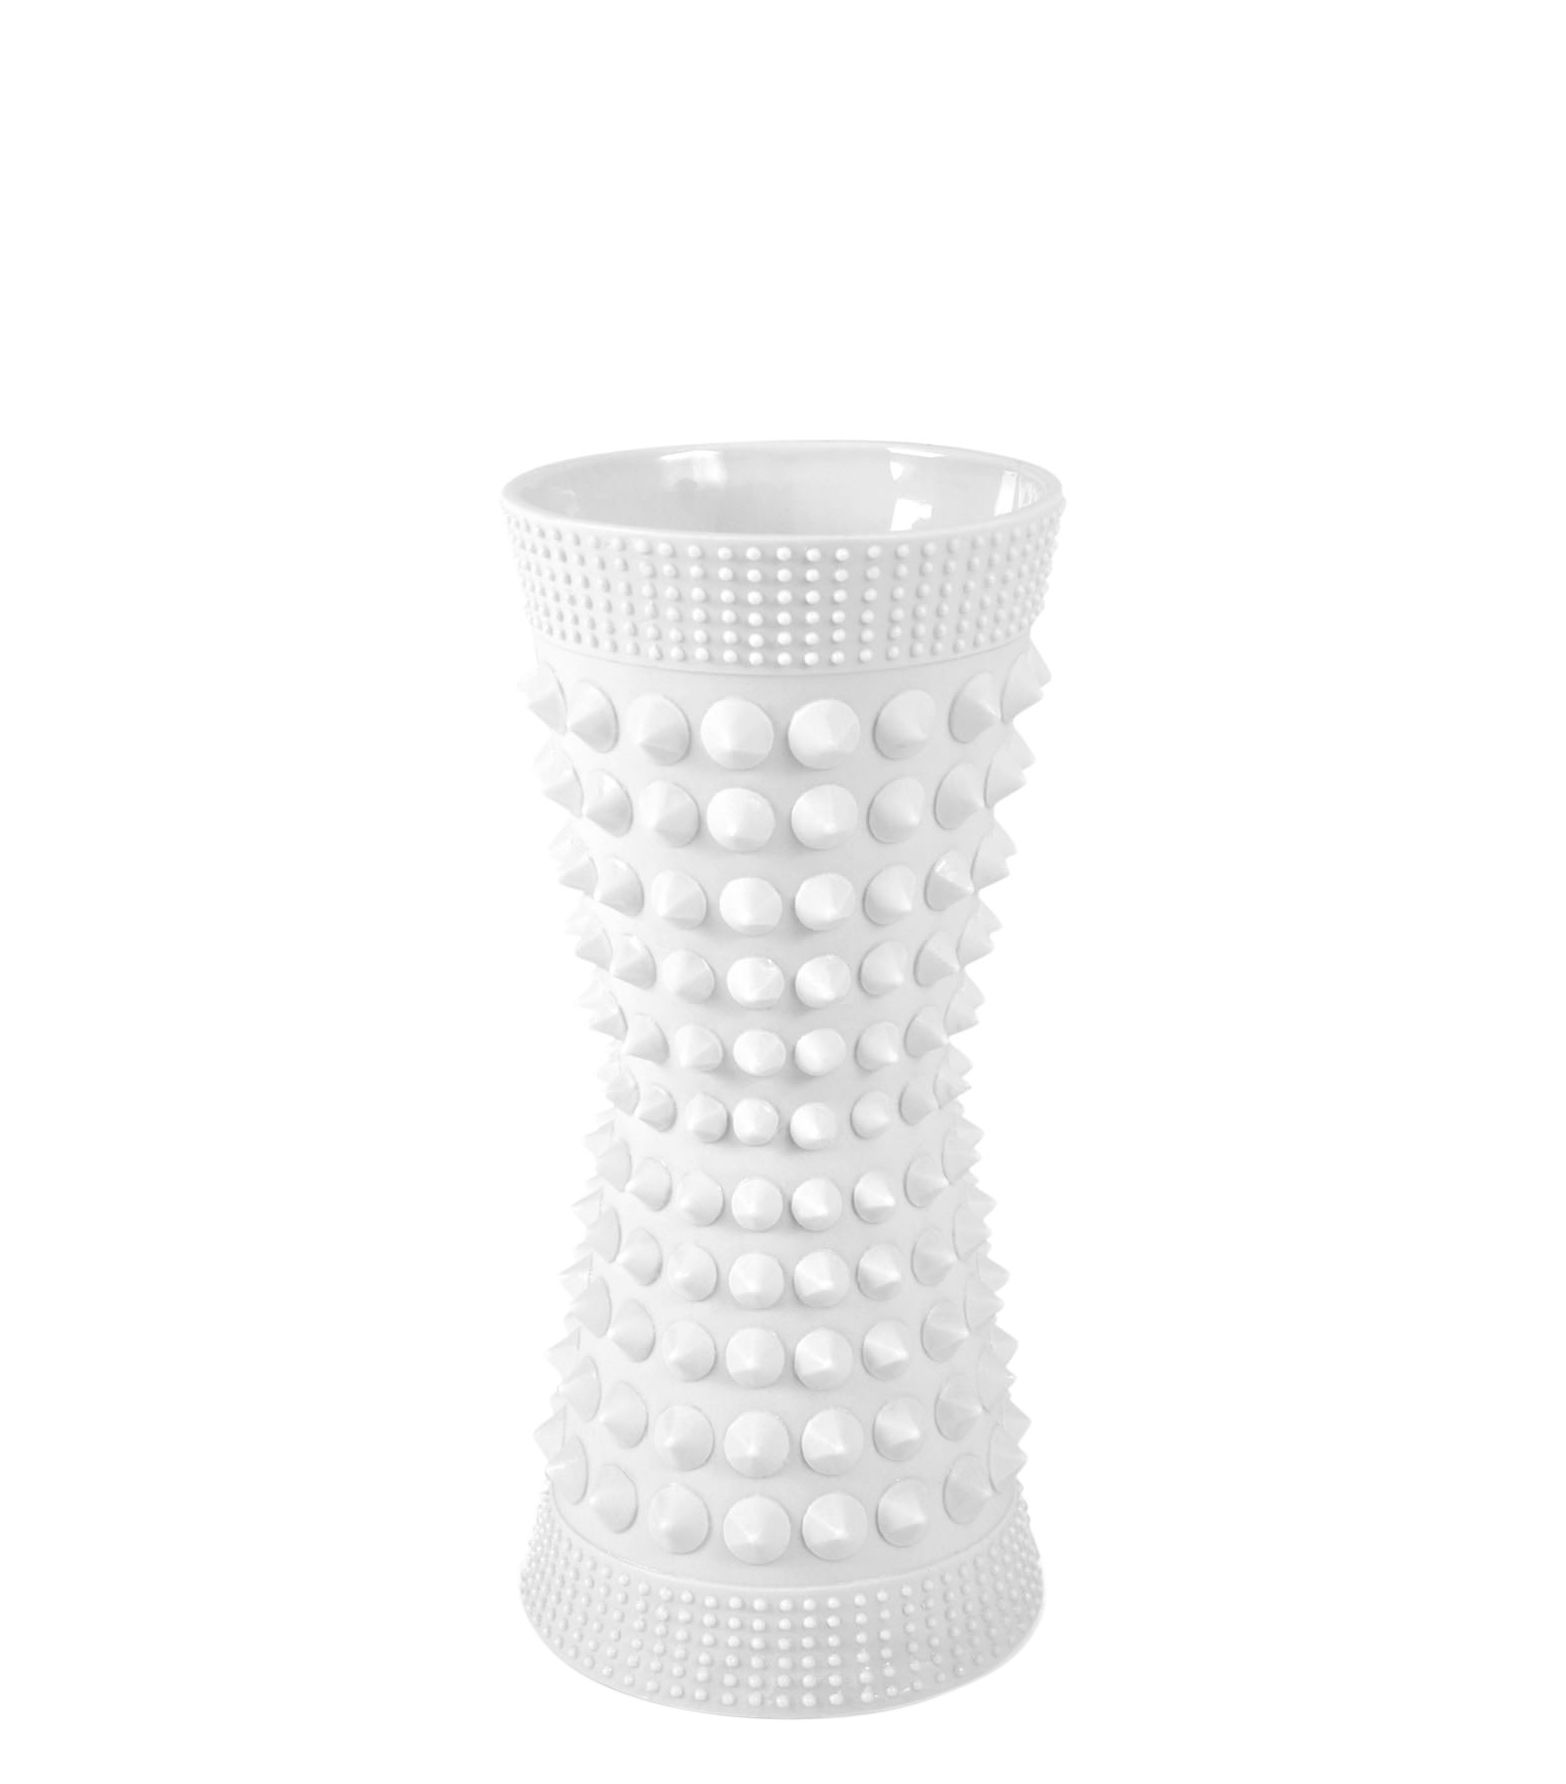 Decoration - Vases - Charade Studded Vase - Porcelain - H 9 cm by Jonathan Adler - Matt white - Matt white porcelain